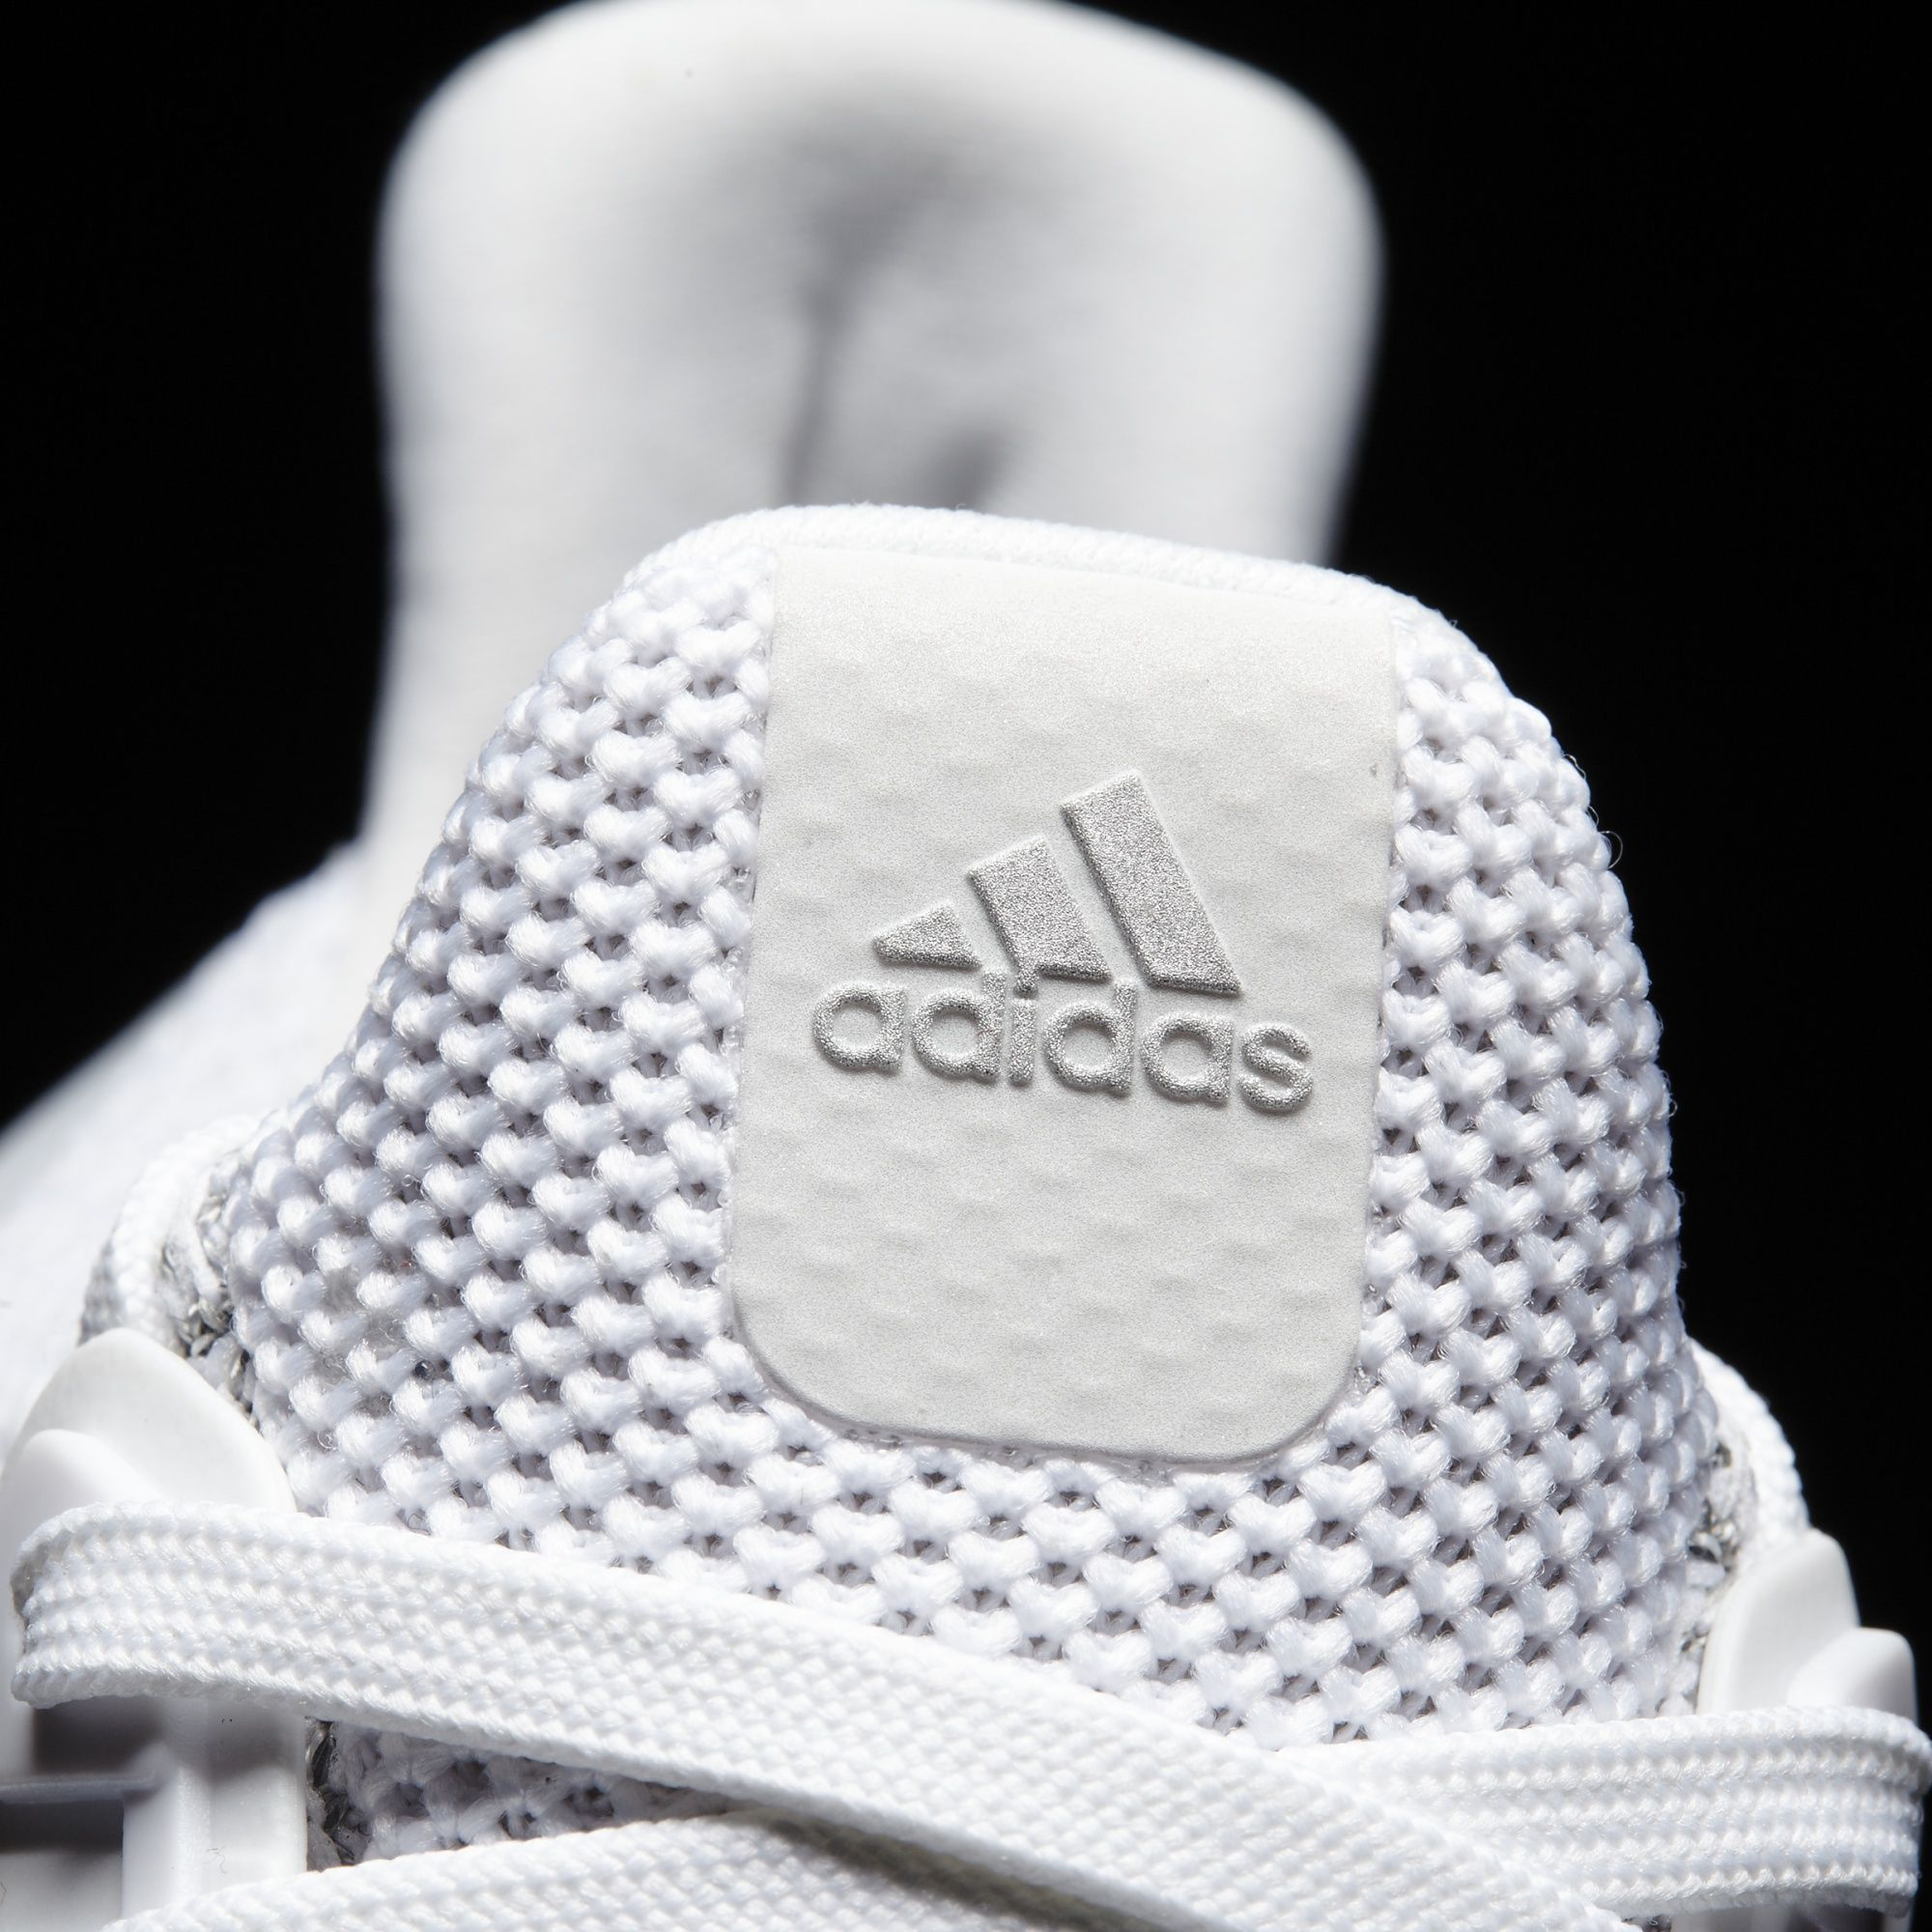 White Adidas Ultra Boost Reflective Tongue Detail